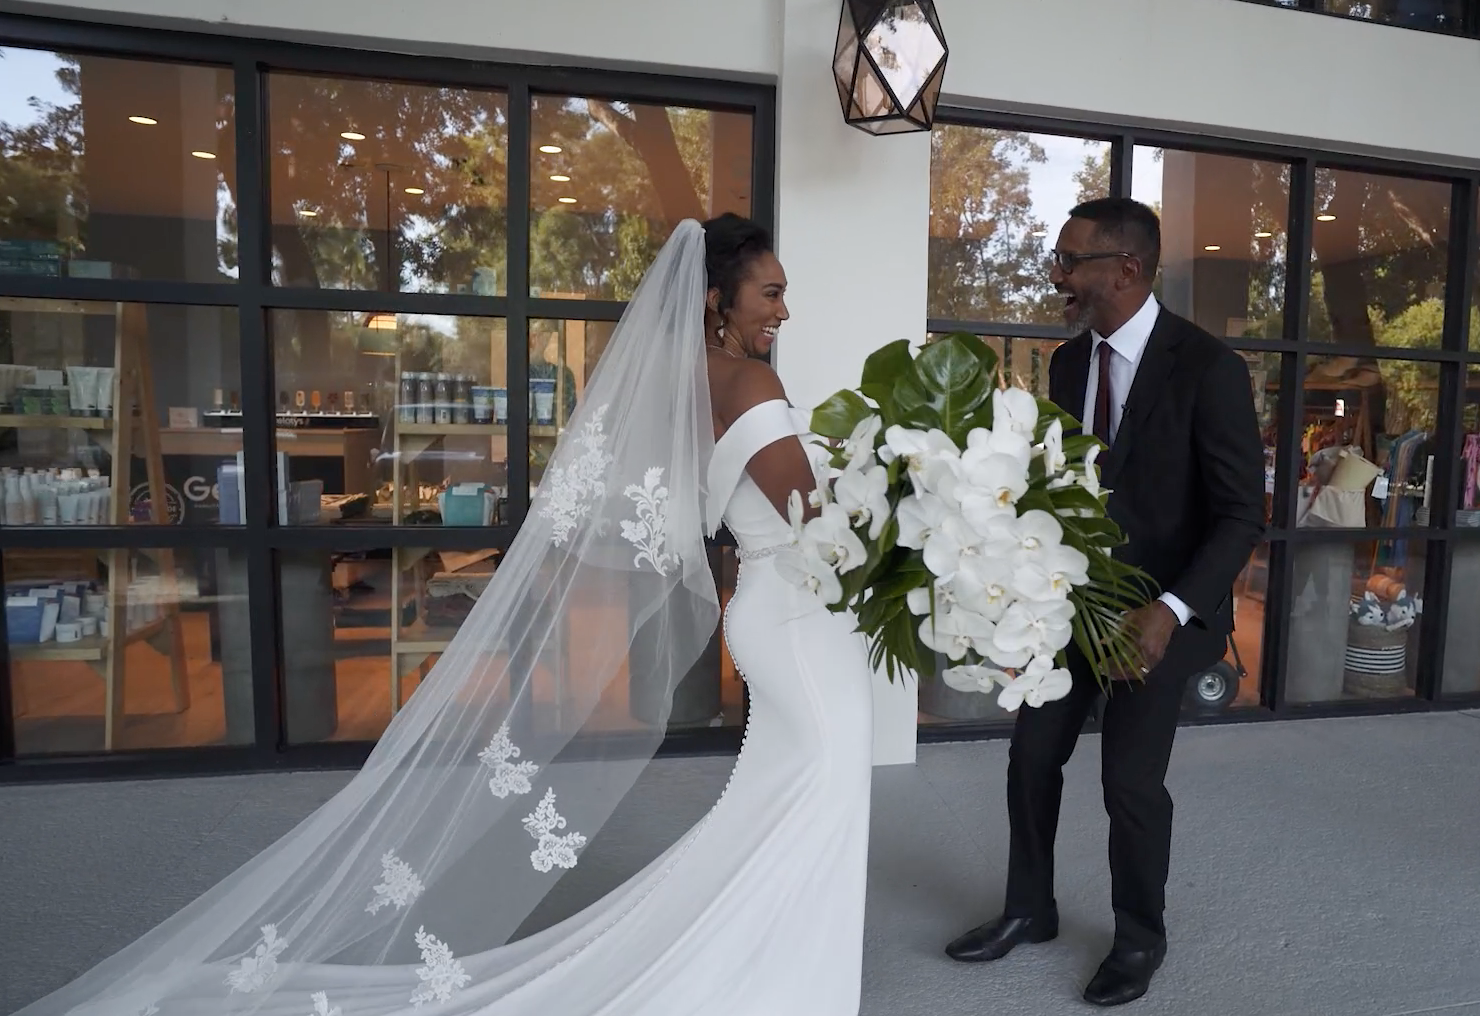 Bride and groom seeing each other for first time on wedding day